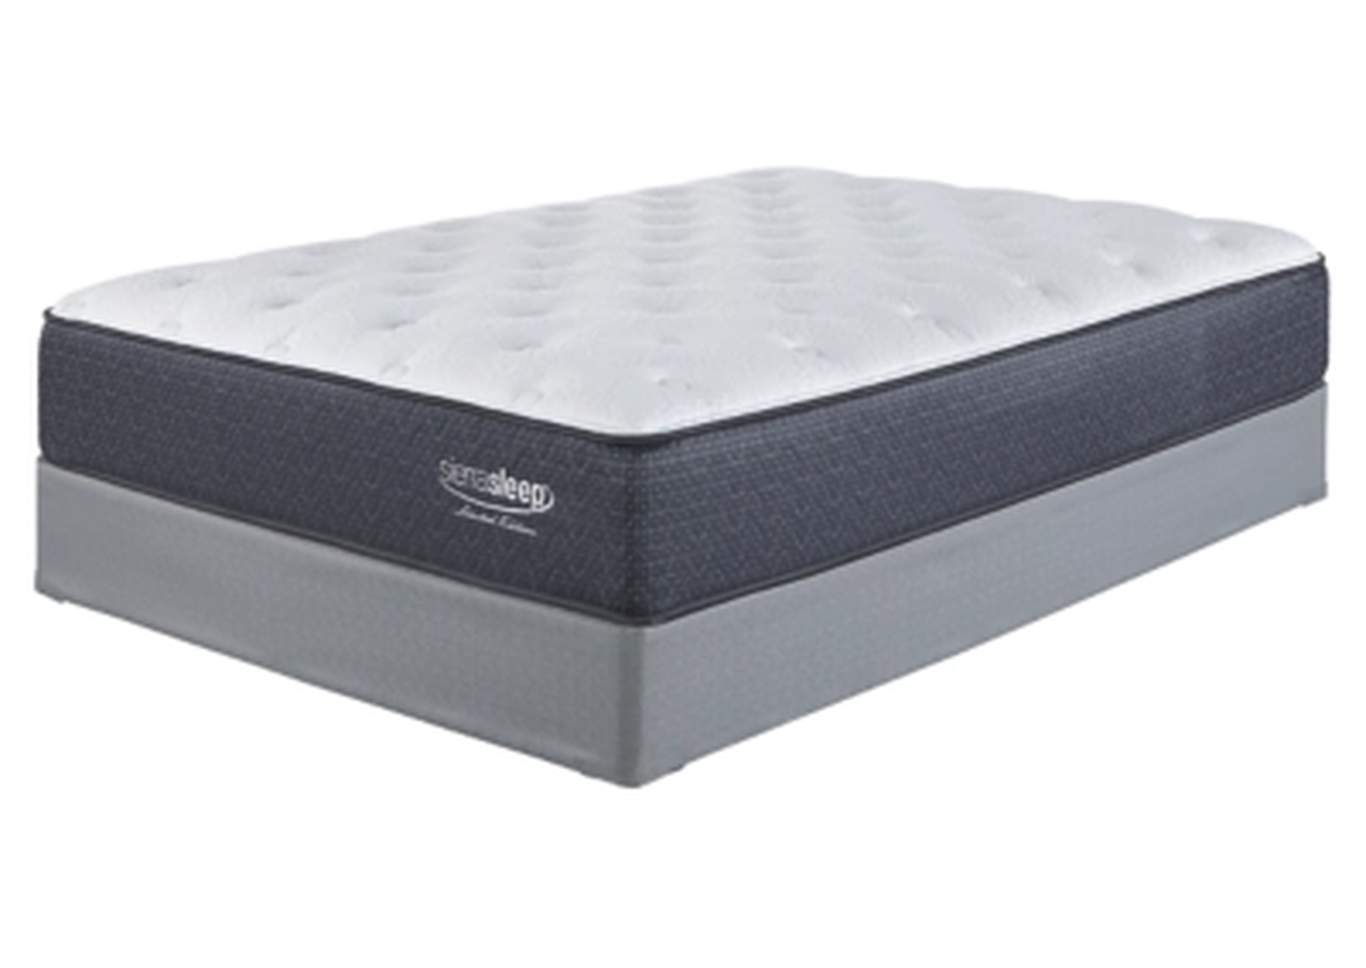 Limited Edition Plush White King Mattress w/Foundation,Sierra Sleep by Ashley